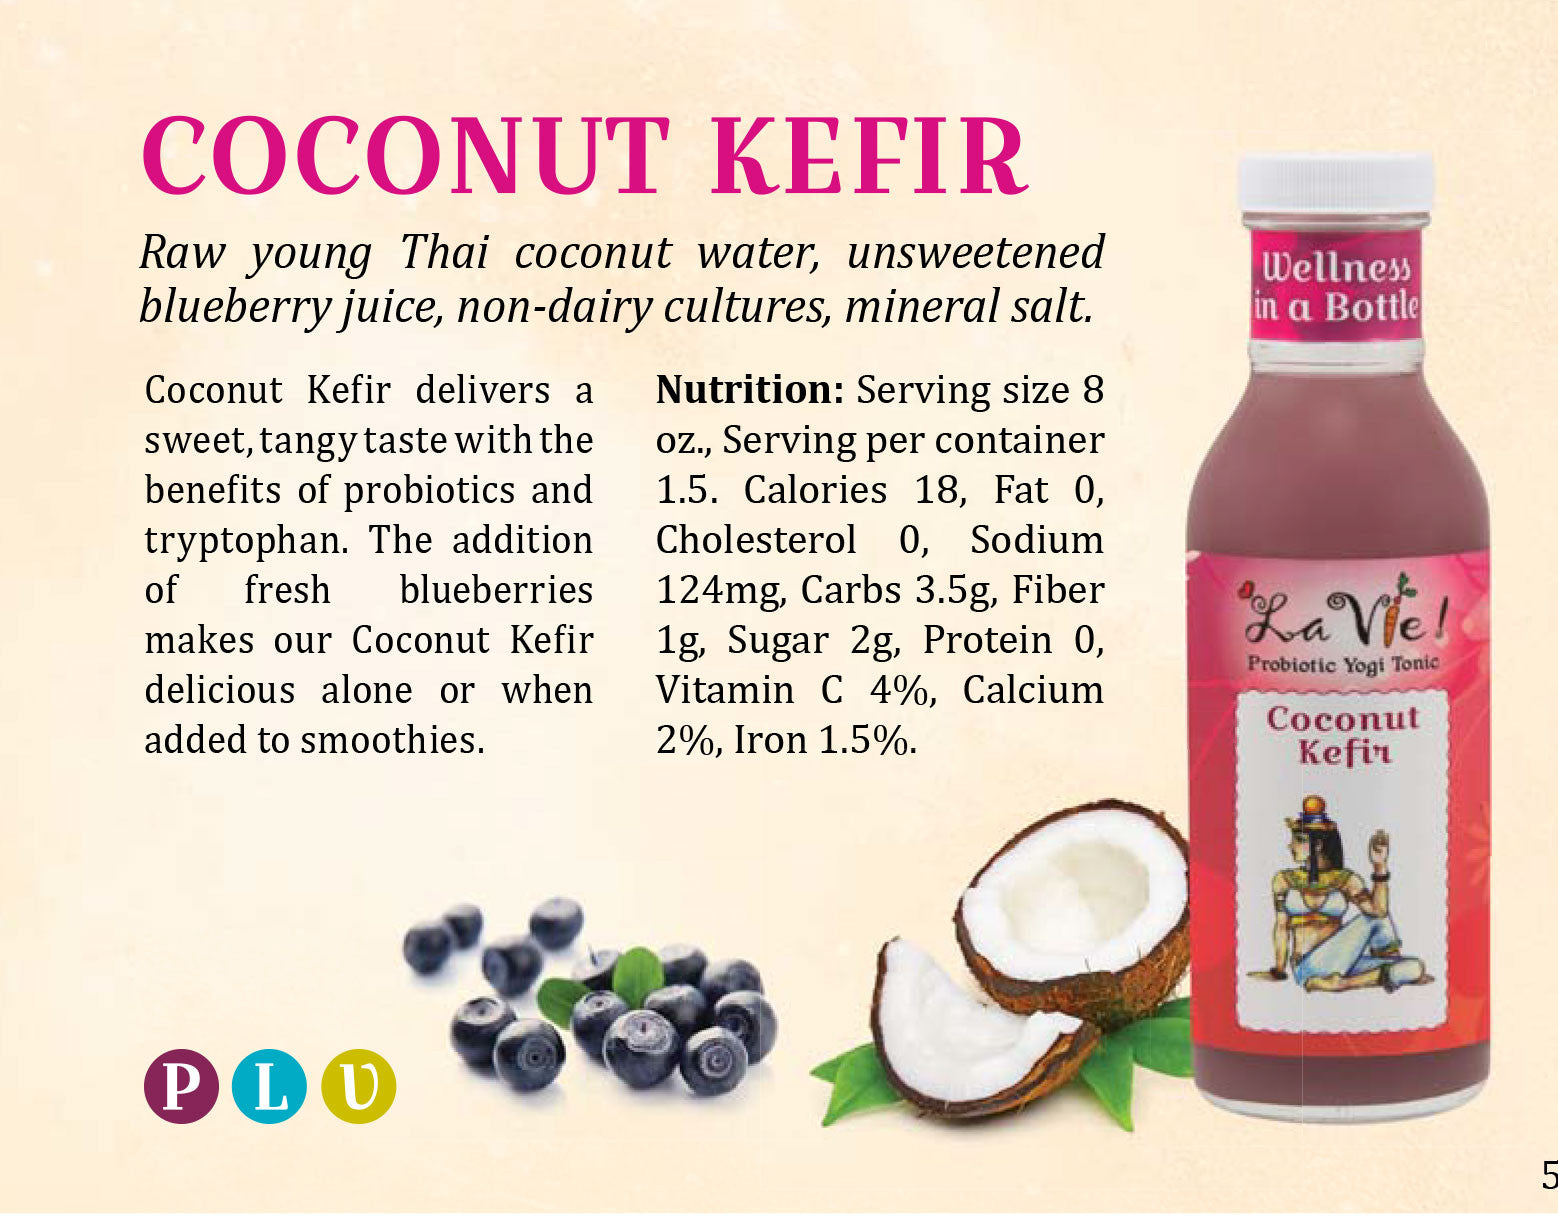 Probiotic Coconut Kefir